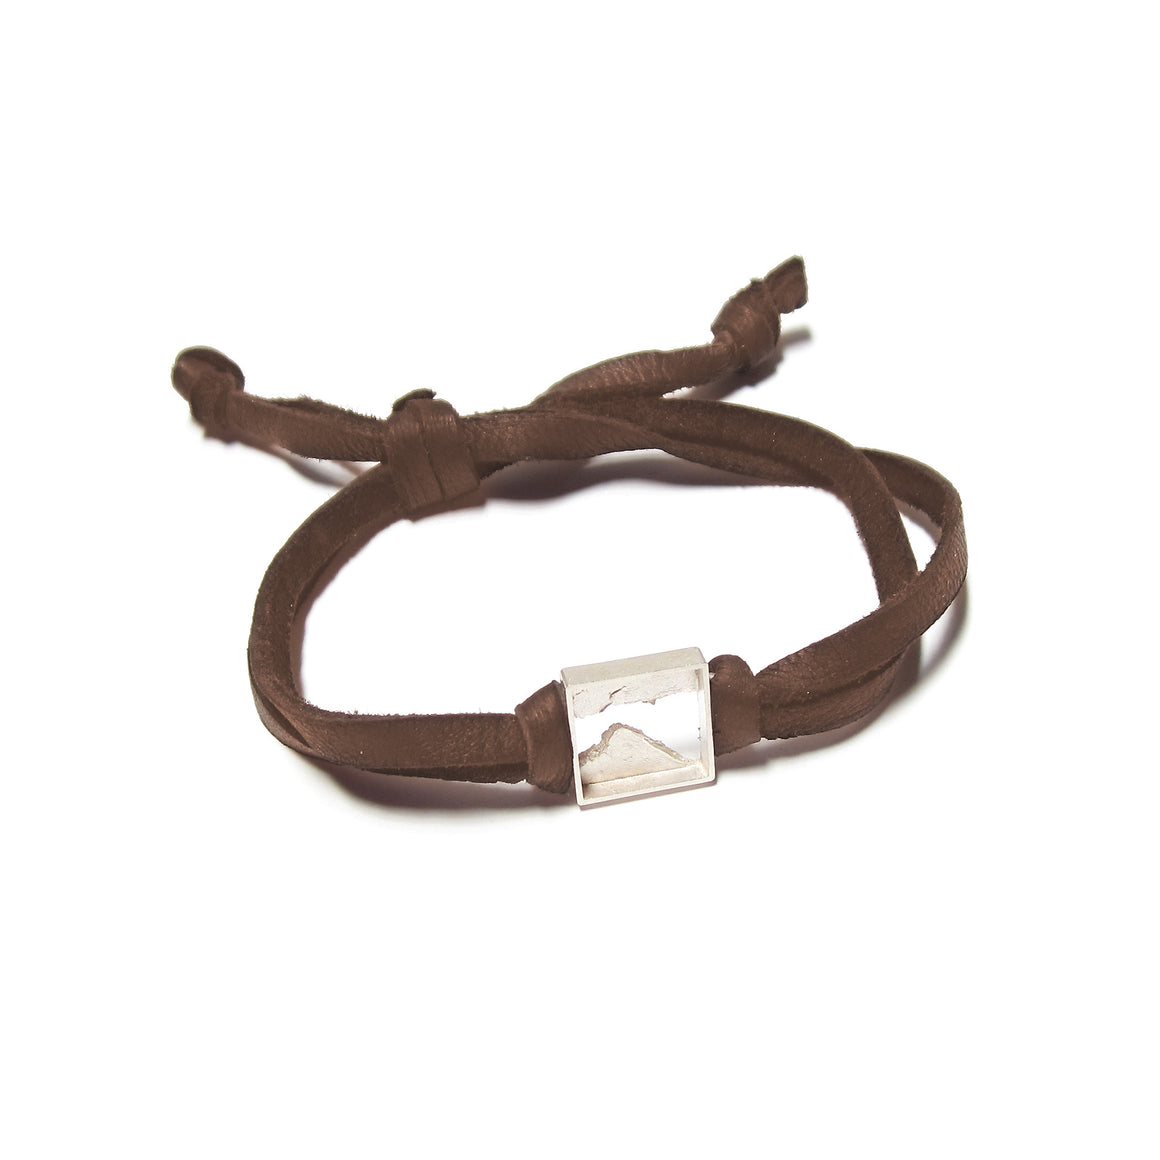 Seth Papac Torn Bracelet in sterling silver and brown leather